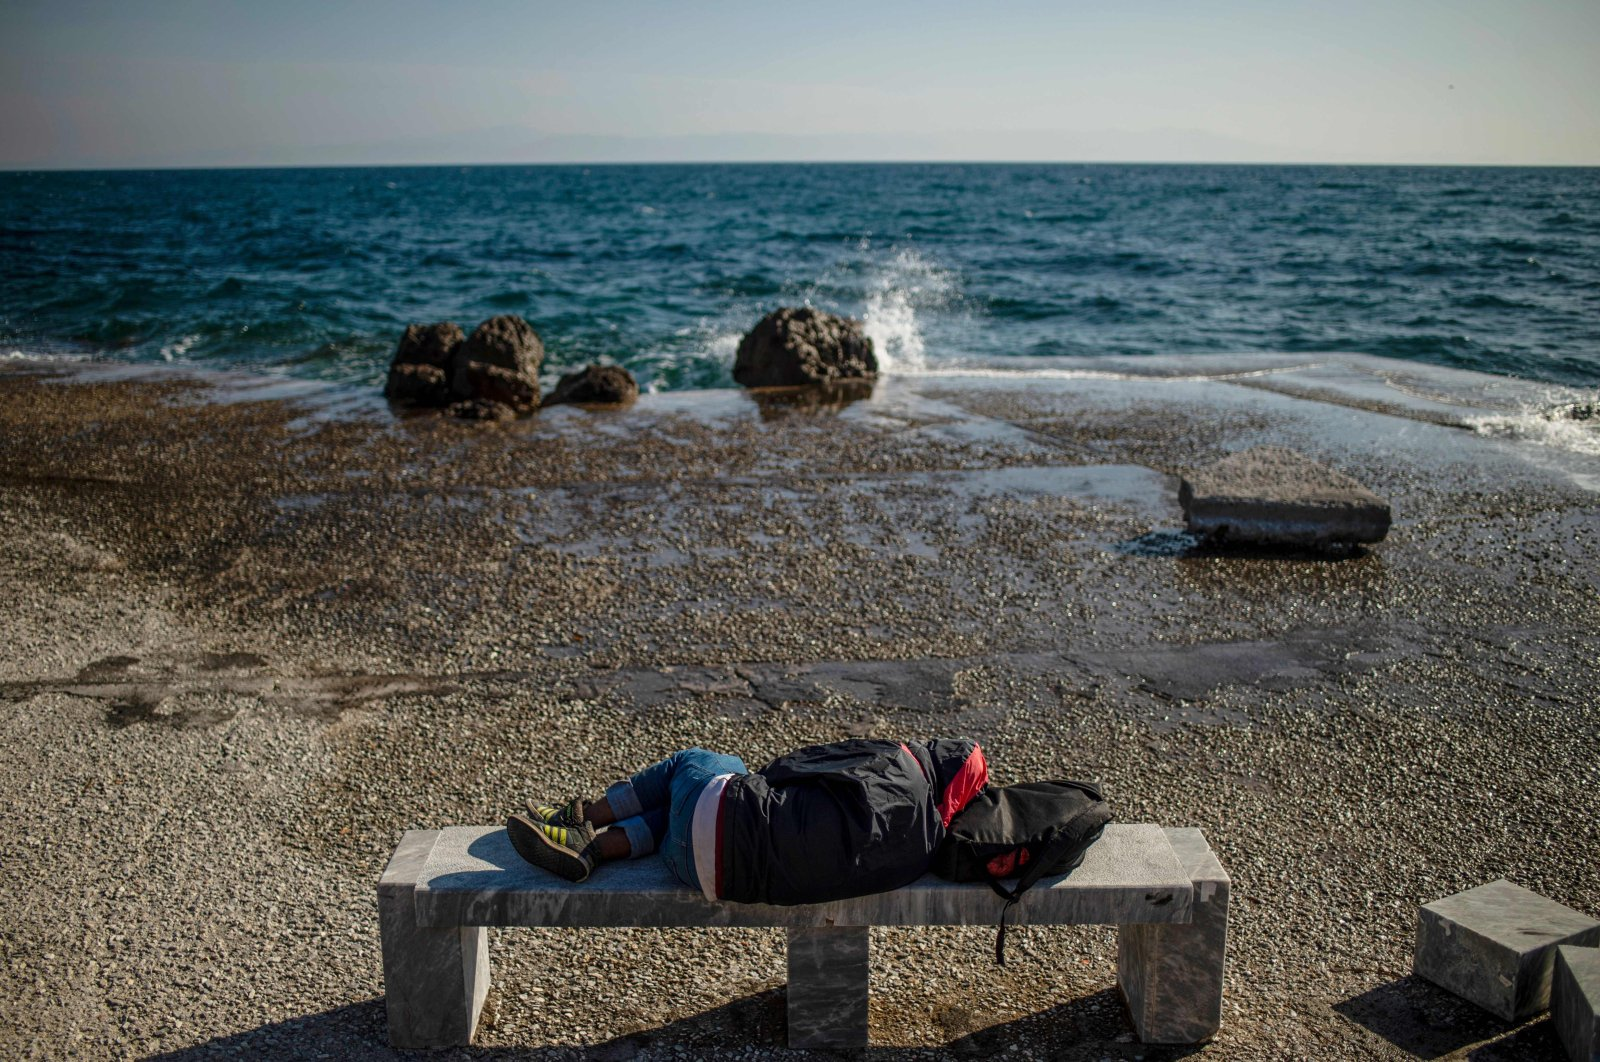 A migrant sleeps on a bench at the harbor quay on the island of Lesbos, Greece, on March 3, 2020 (AFP Photo)